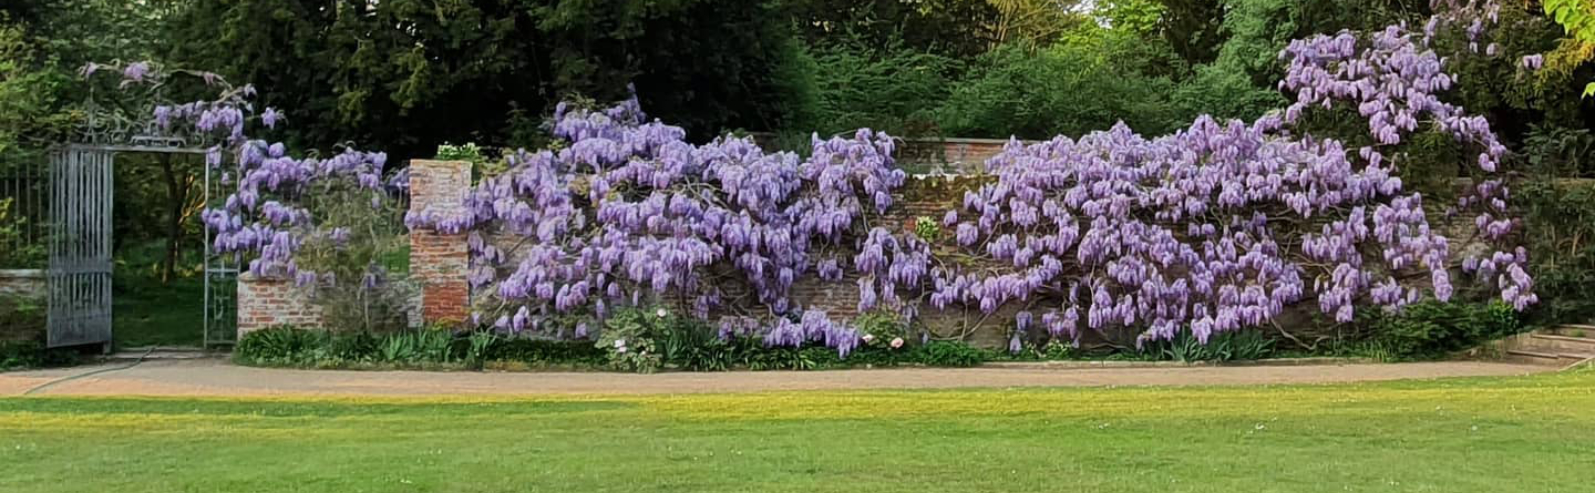 Wisteria in formal garden